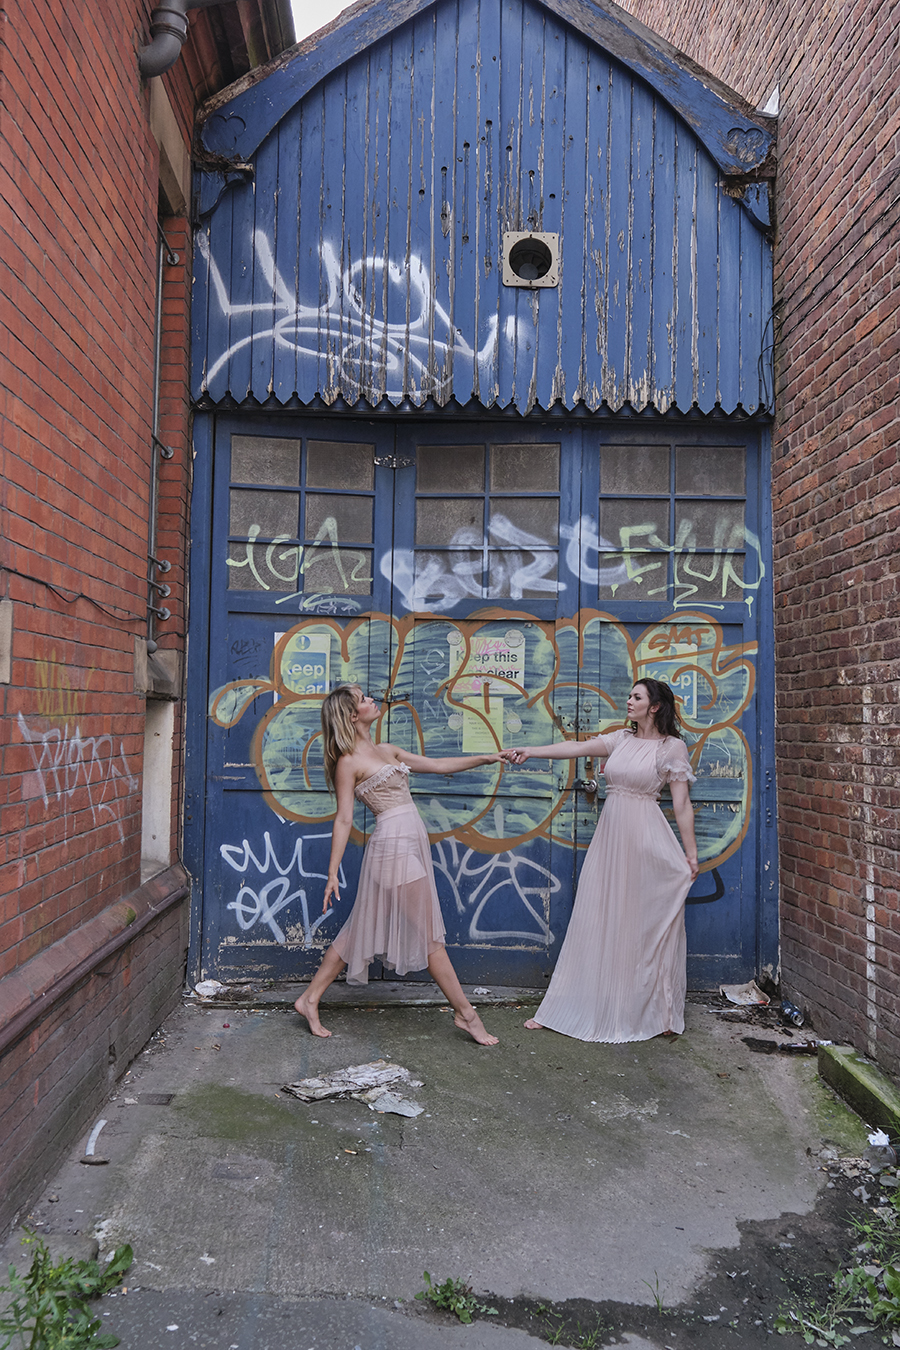 Come to Me / Photography by GaryMac Photography, Models Angel., Models Lizzie Bayliss / Uploaded 7th September 2019 @ 11:25 PM